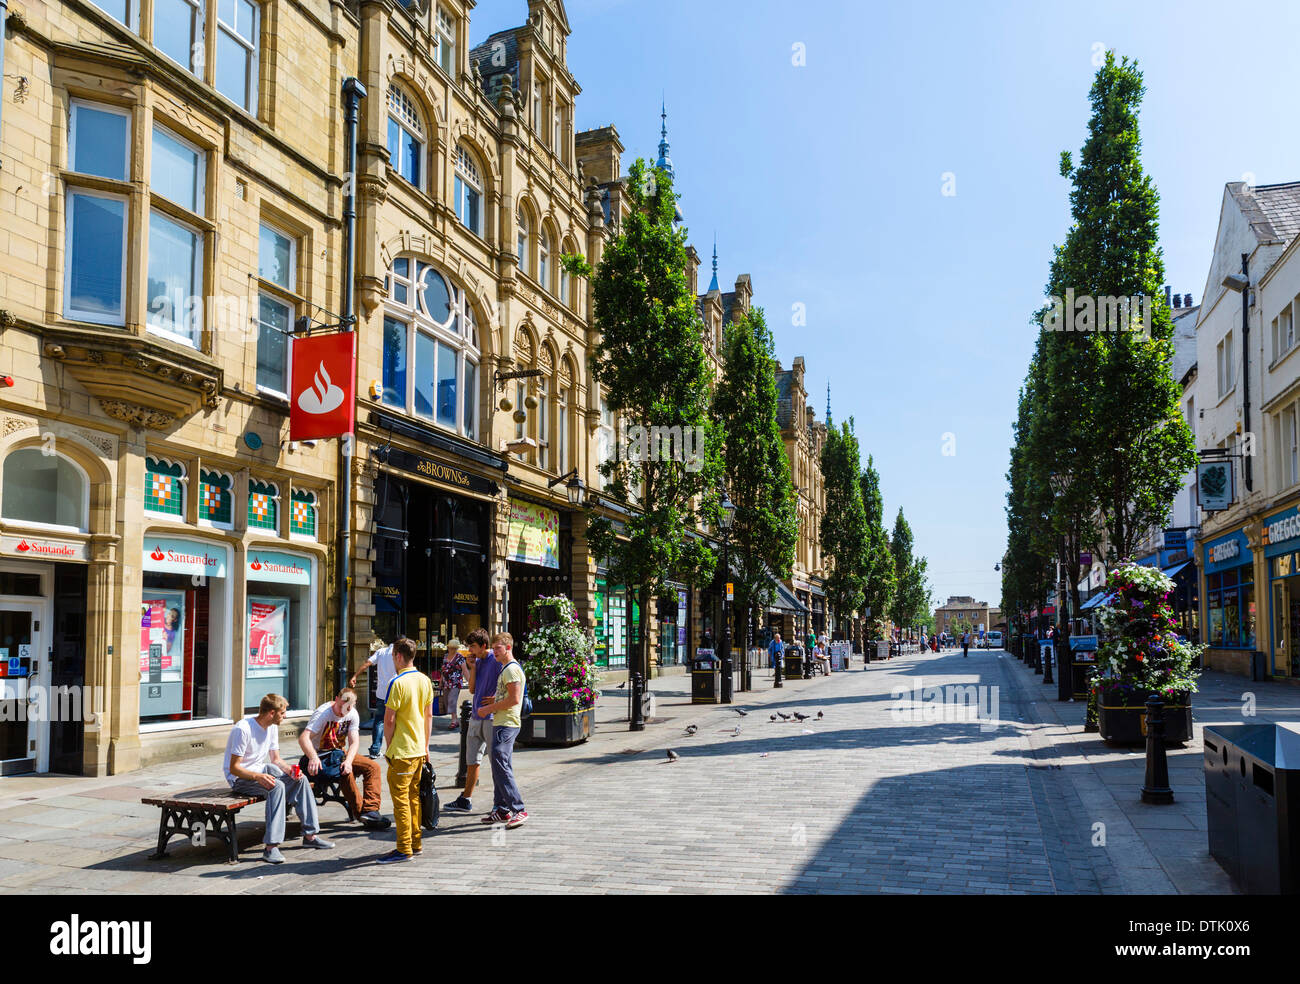 dating halifax west yorkshire Halifax is a minster town in the metropolitan borough of calderdale in west yorkshire, england the town has been a centre of woollen manufacture from the 15th century onward, originally dealing through the piece hall.